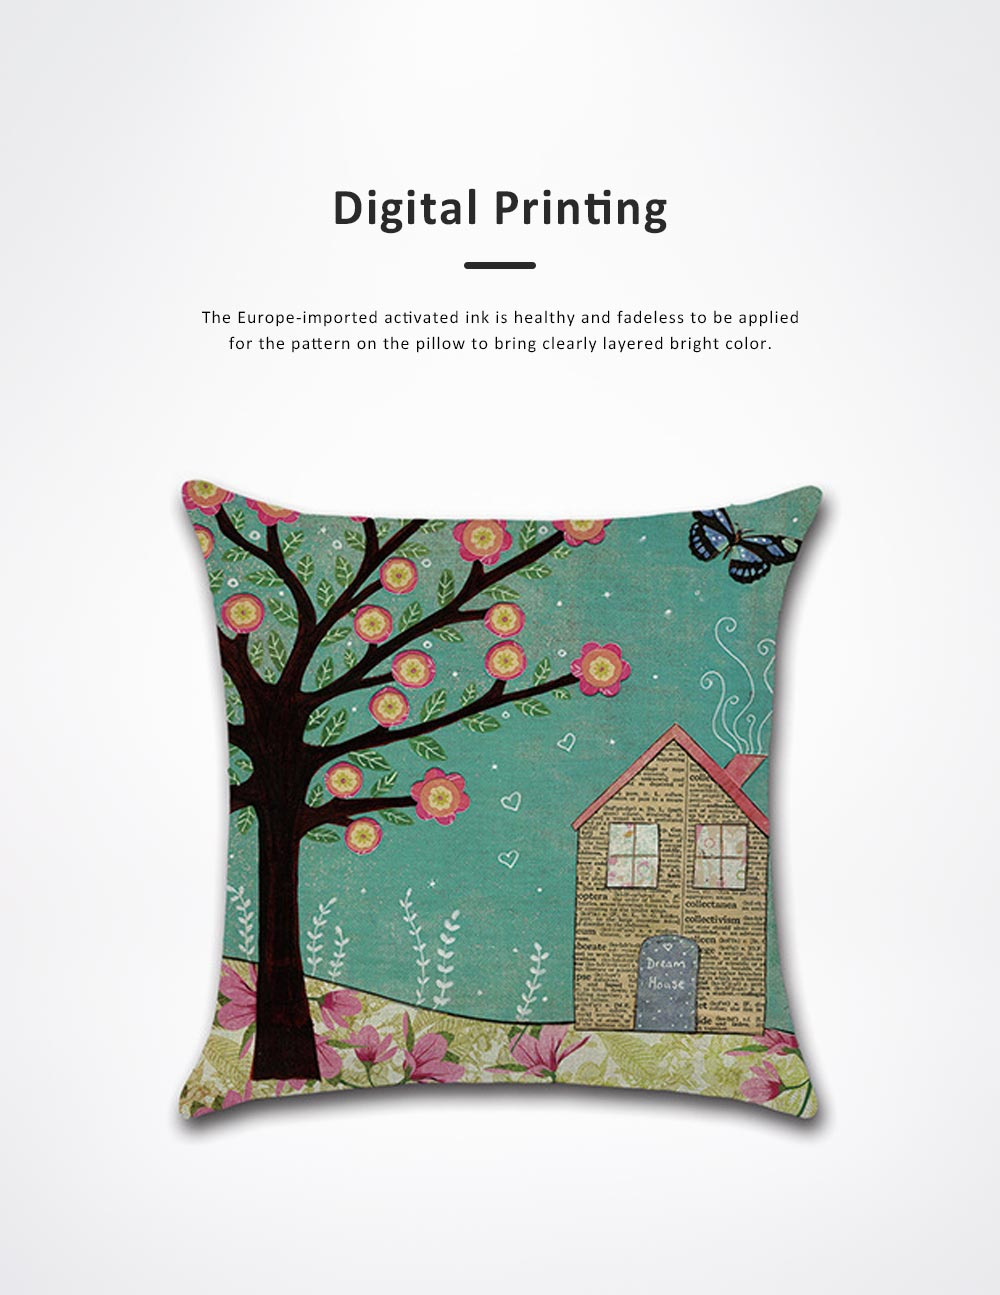 Abstract Tree Pattern Cushion Cover with Digital Printing, Skin-friendly Back Cushion Case for Vehicles, Sofa, Office Pillow Case 2